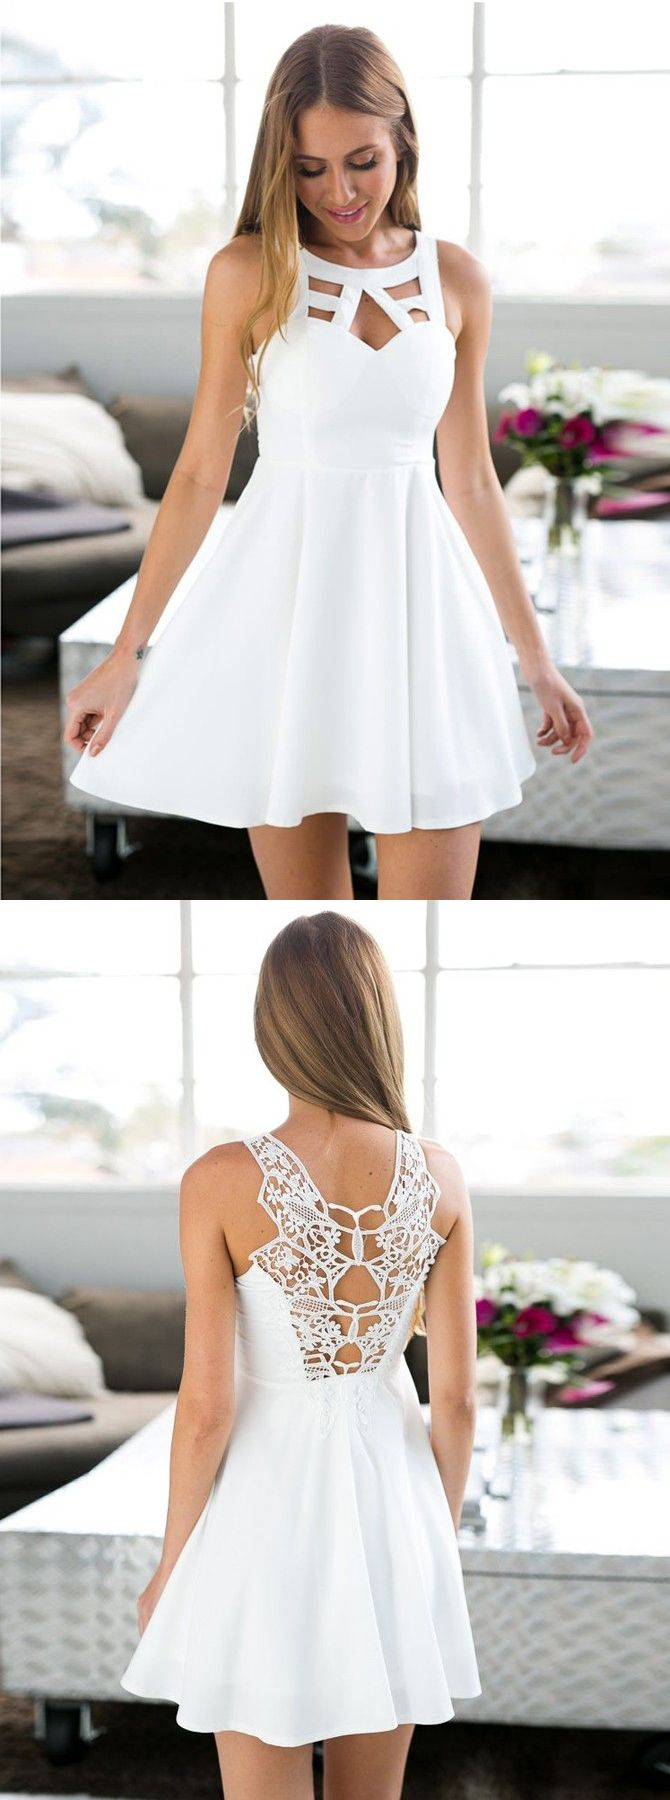 Aline jewel short white satin homecoming dress with lace in